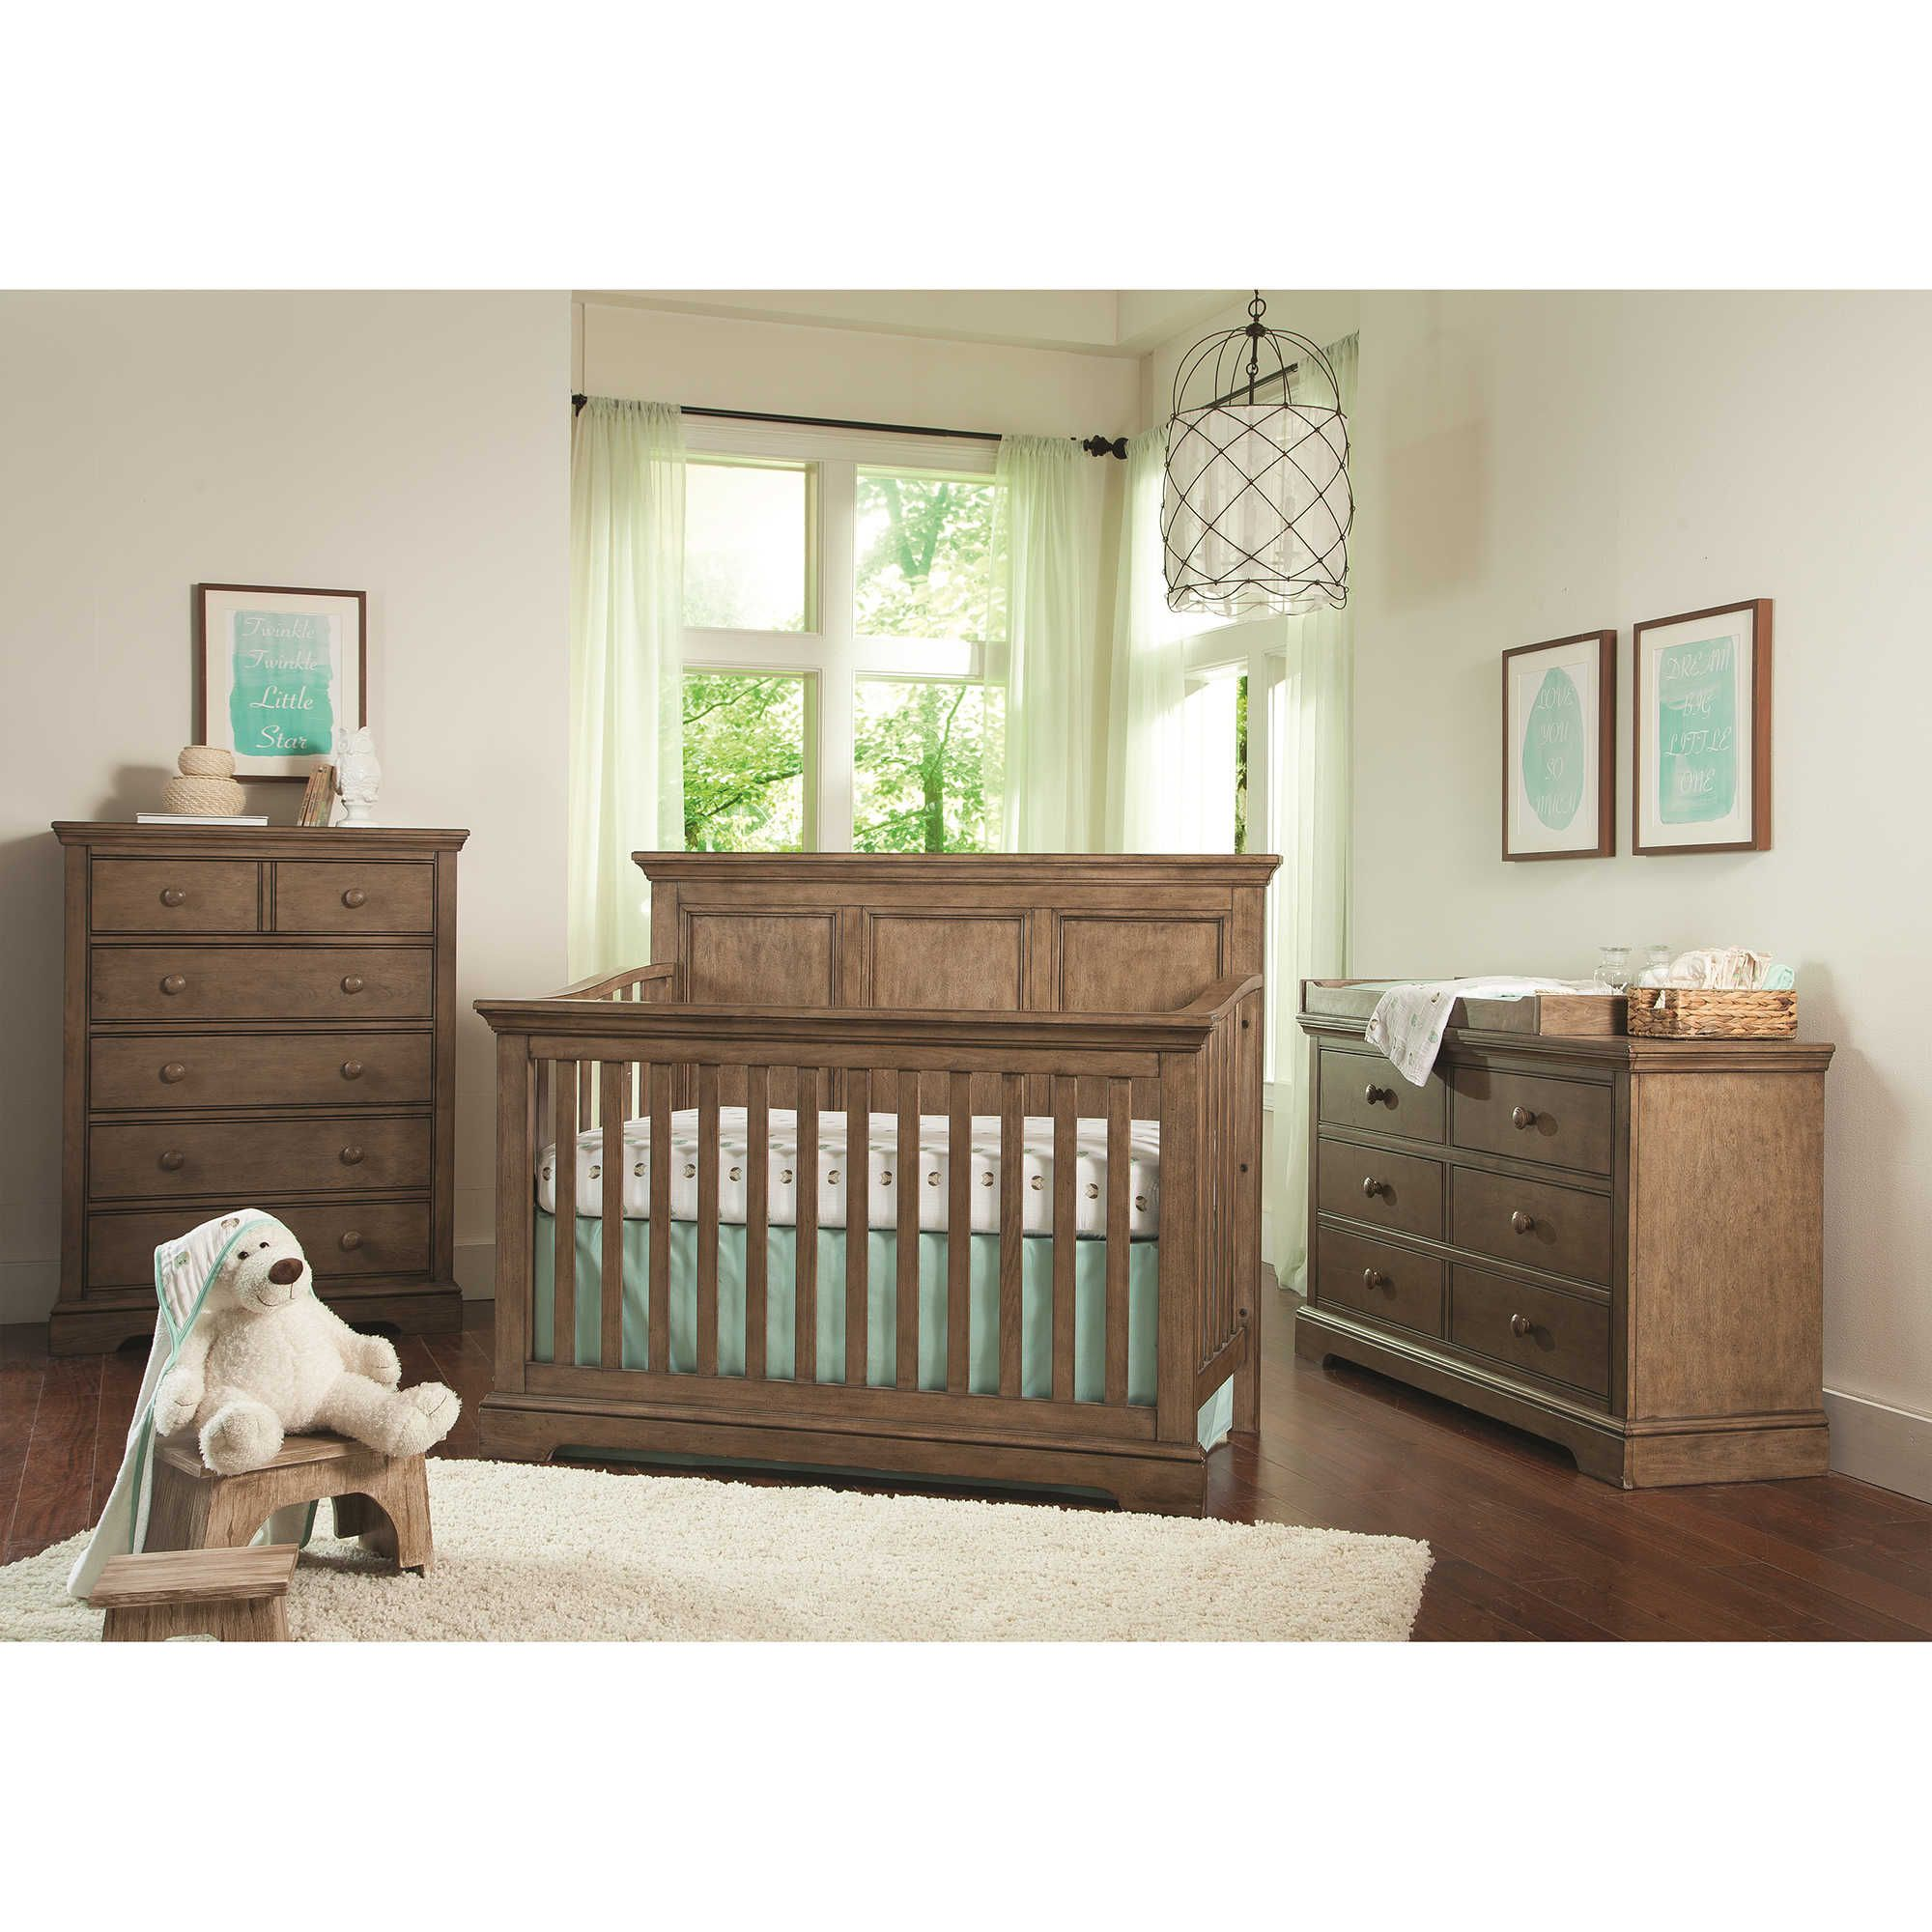 crib convertible shipping design free jonesport westwood cloud cribs in